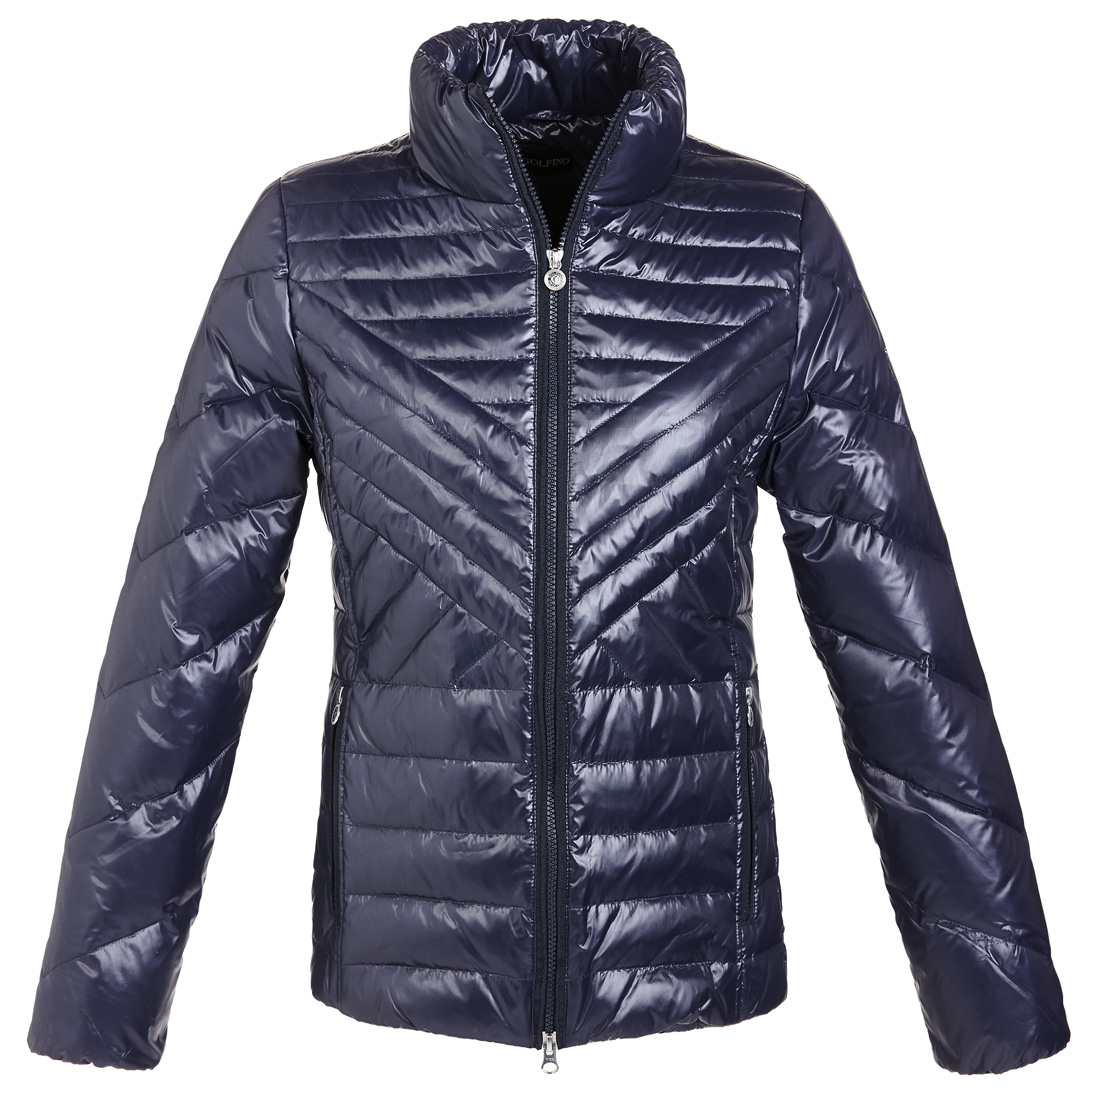 Cold Protection Daunen Steppjacke